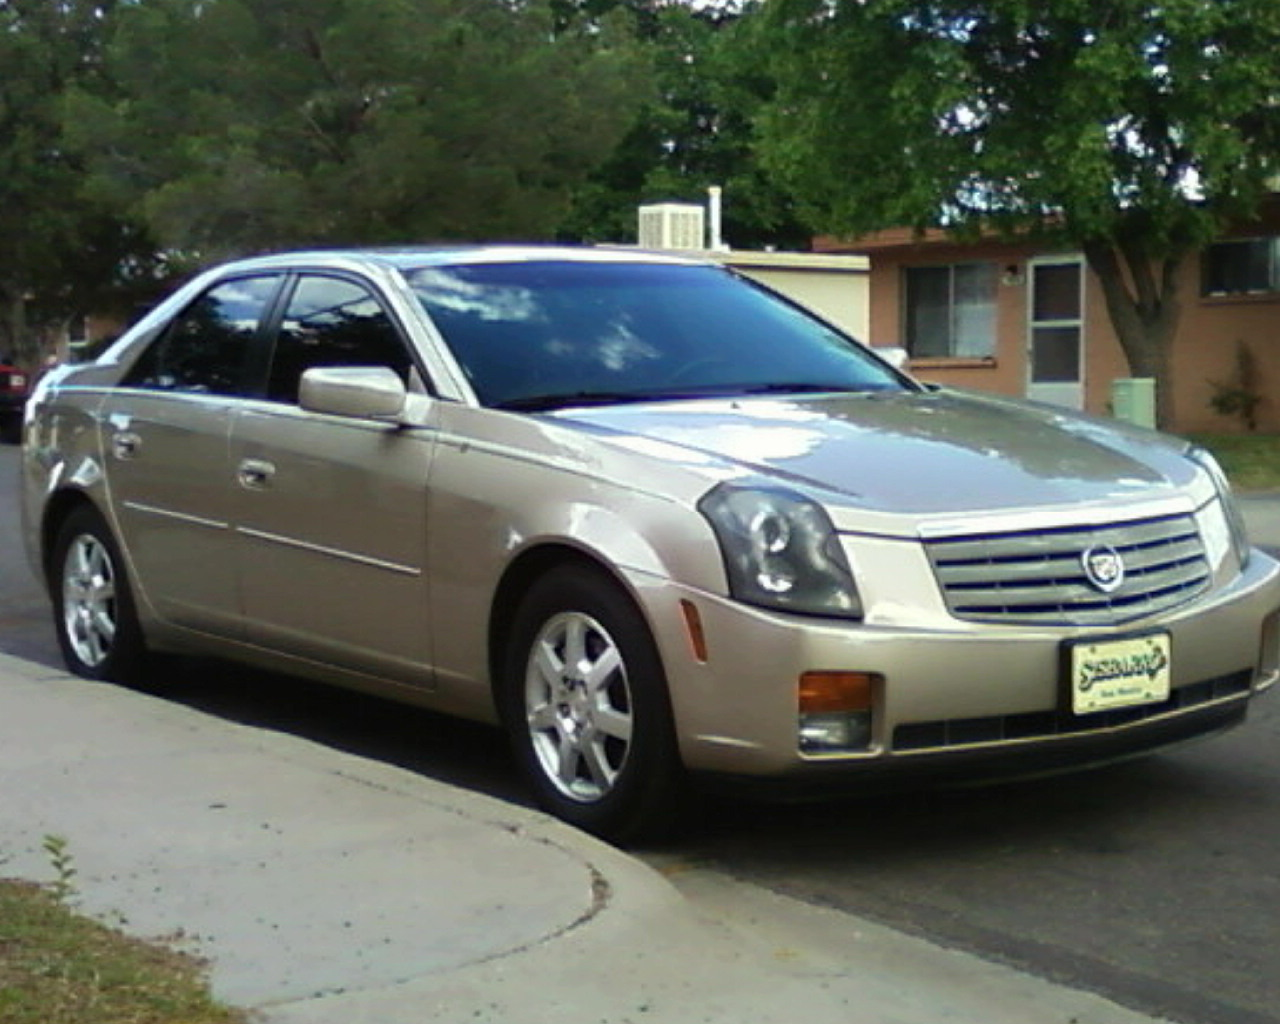 isaiahcts 39 s 2005 cadillac cts in isaiahcts nm. Black Bedroom Furniture Sets. Home Design Ideas